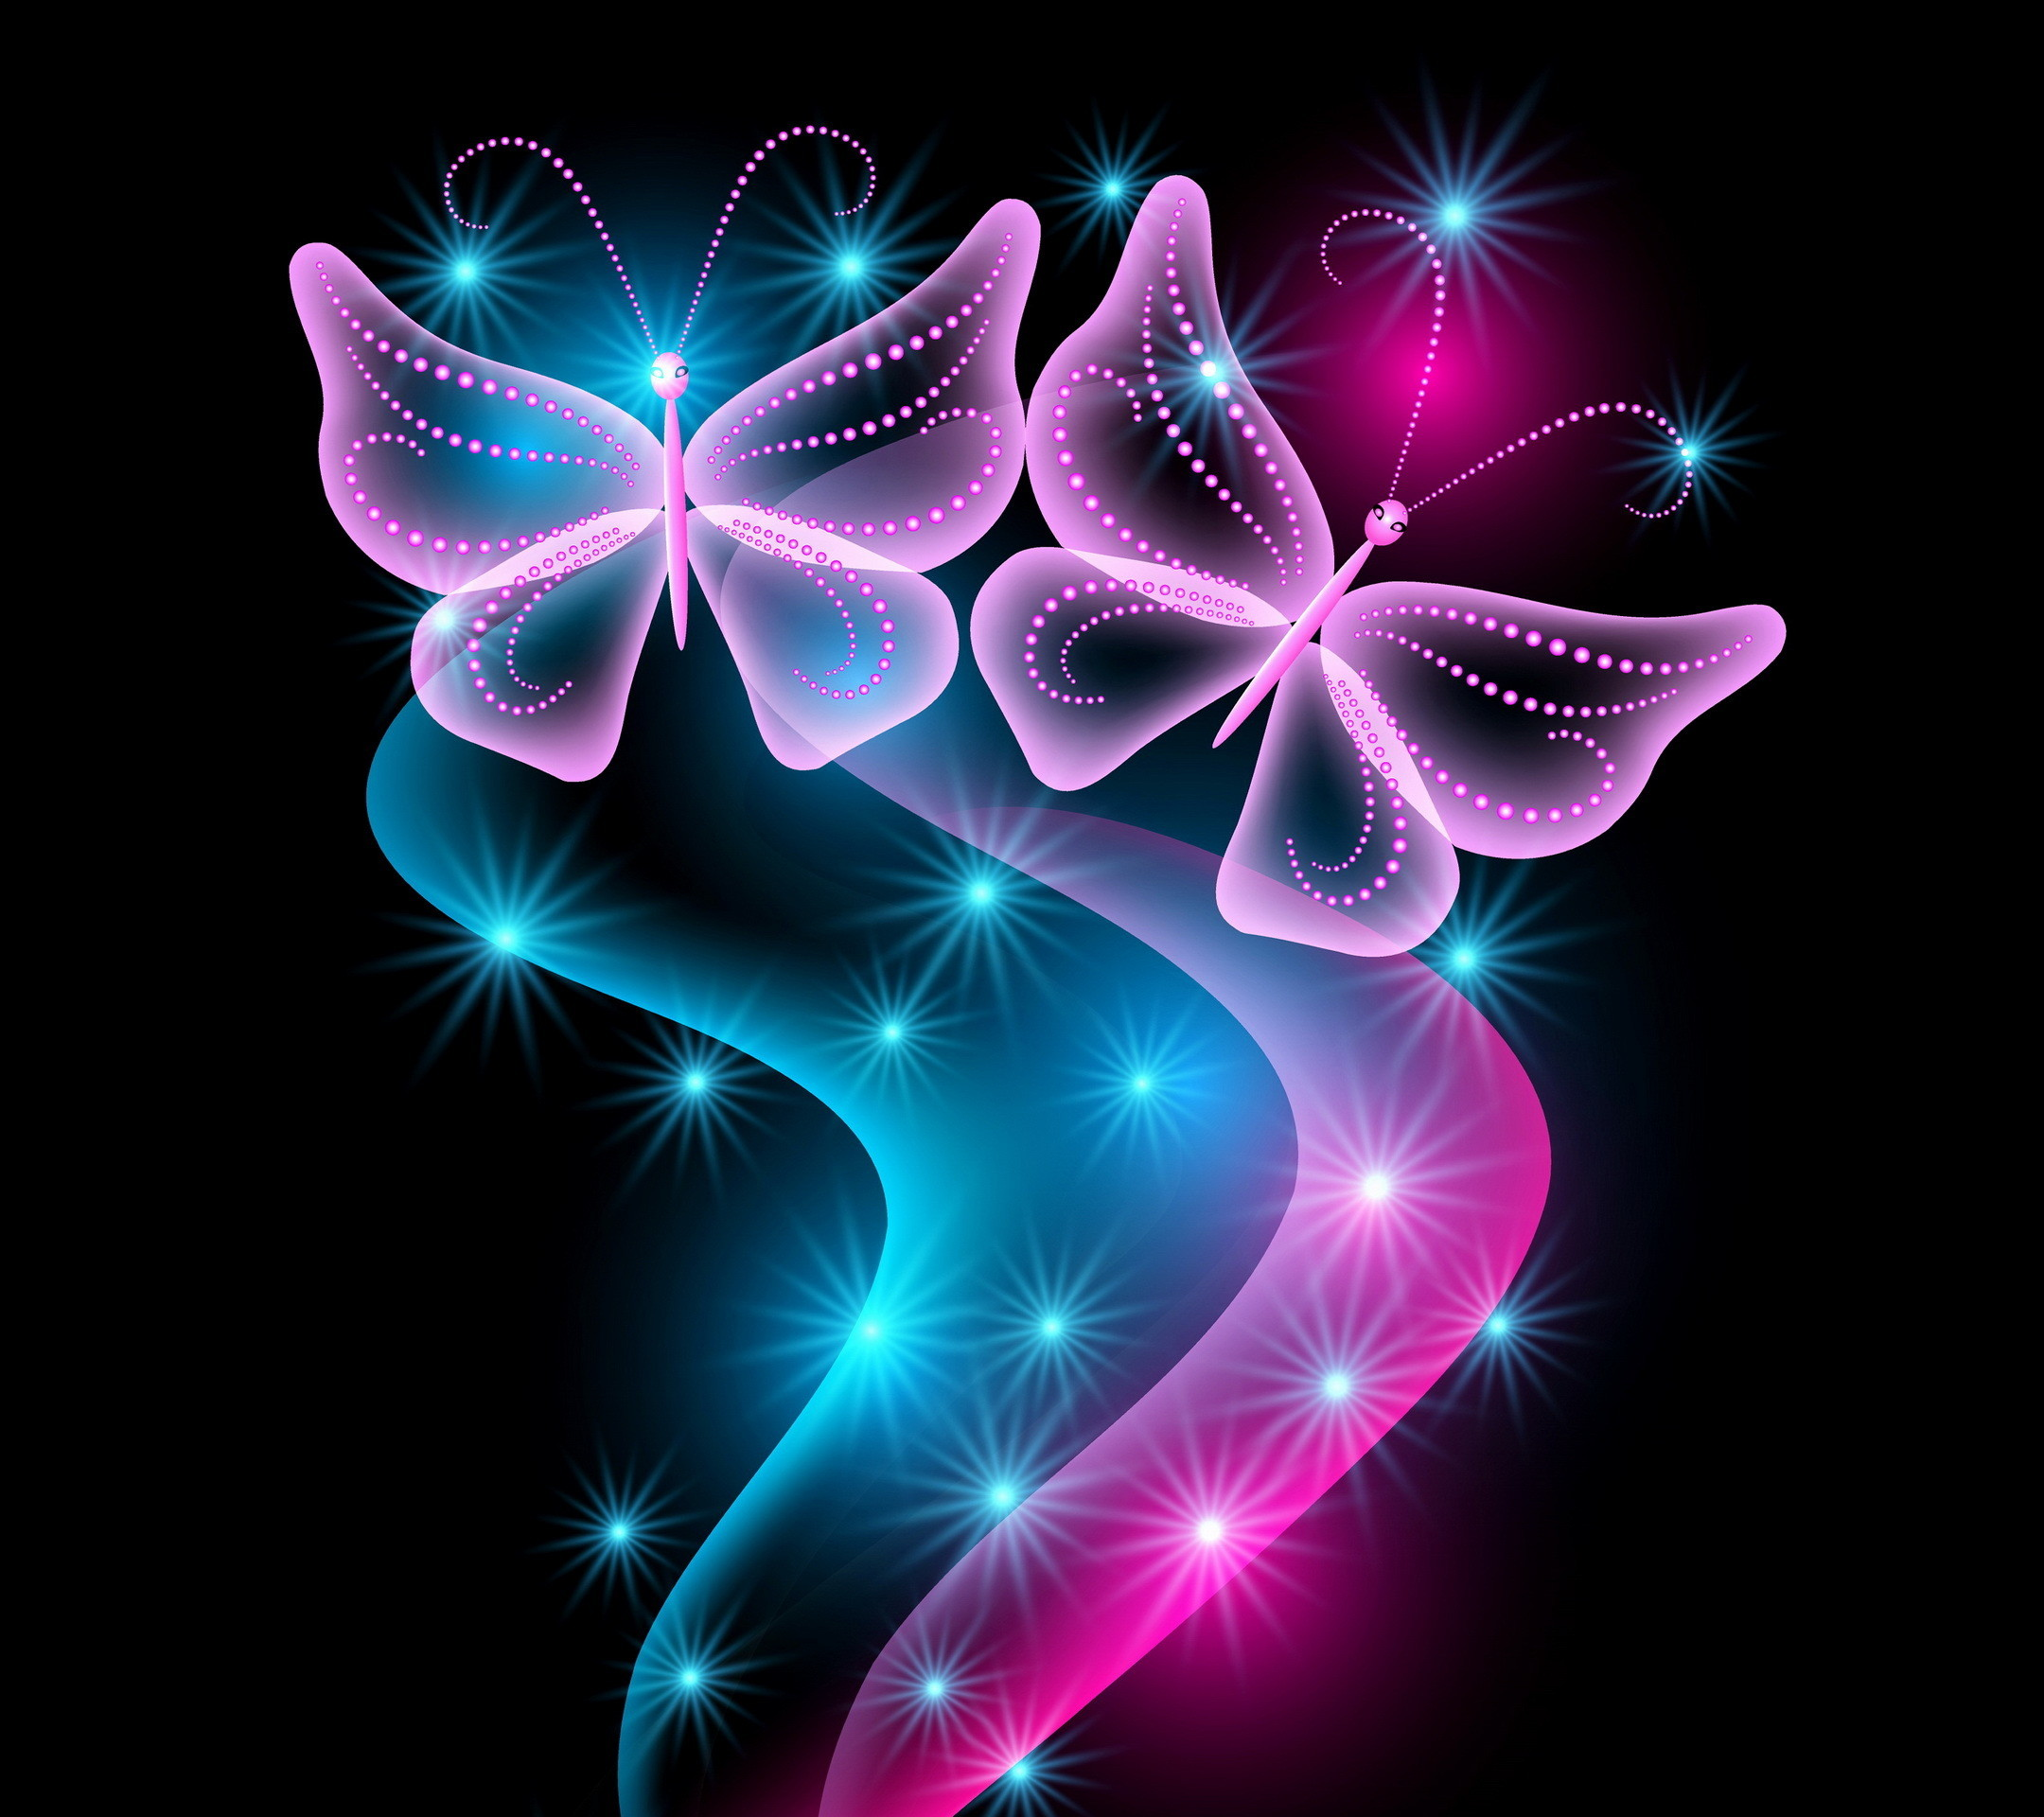 2160x1920 free butterfly wallpaper for kindle fire hd | ... , pink, sparkle,